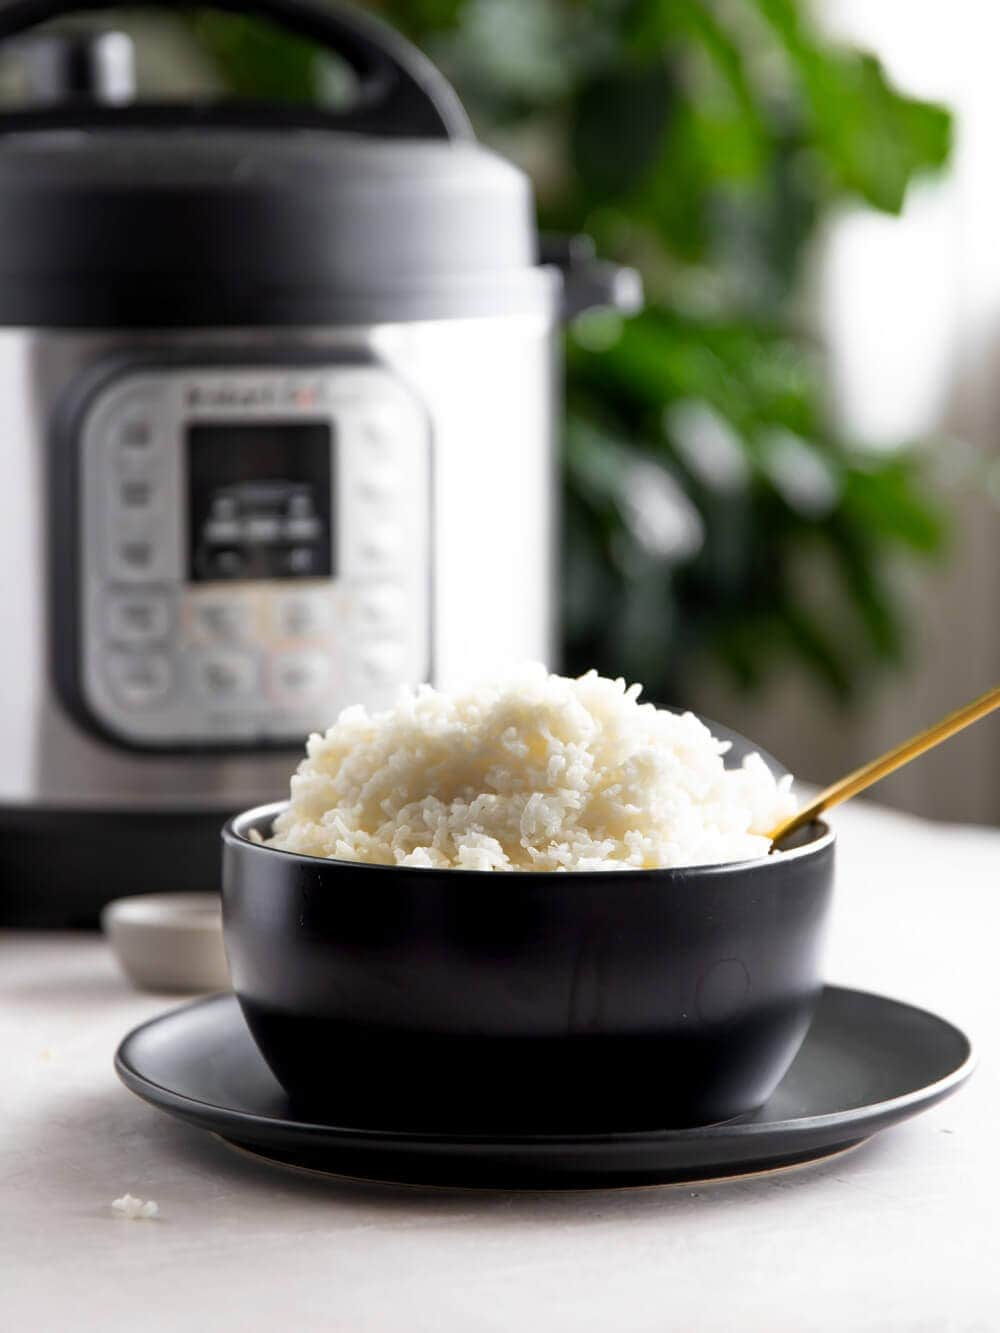 A bowl of basmati rice sitting in front of the instant pot.